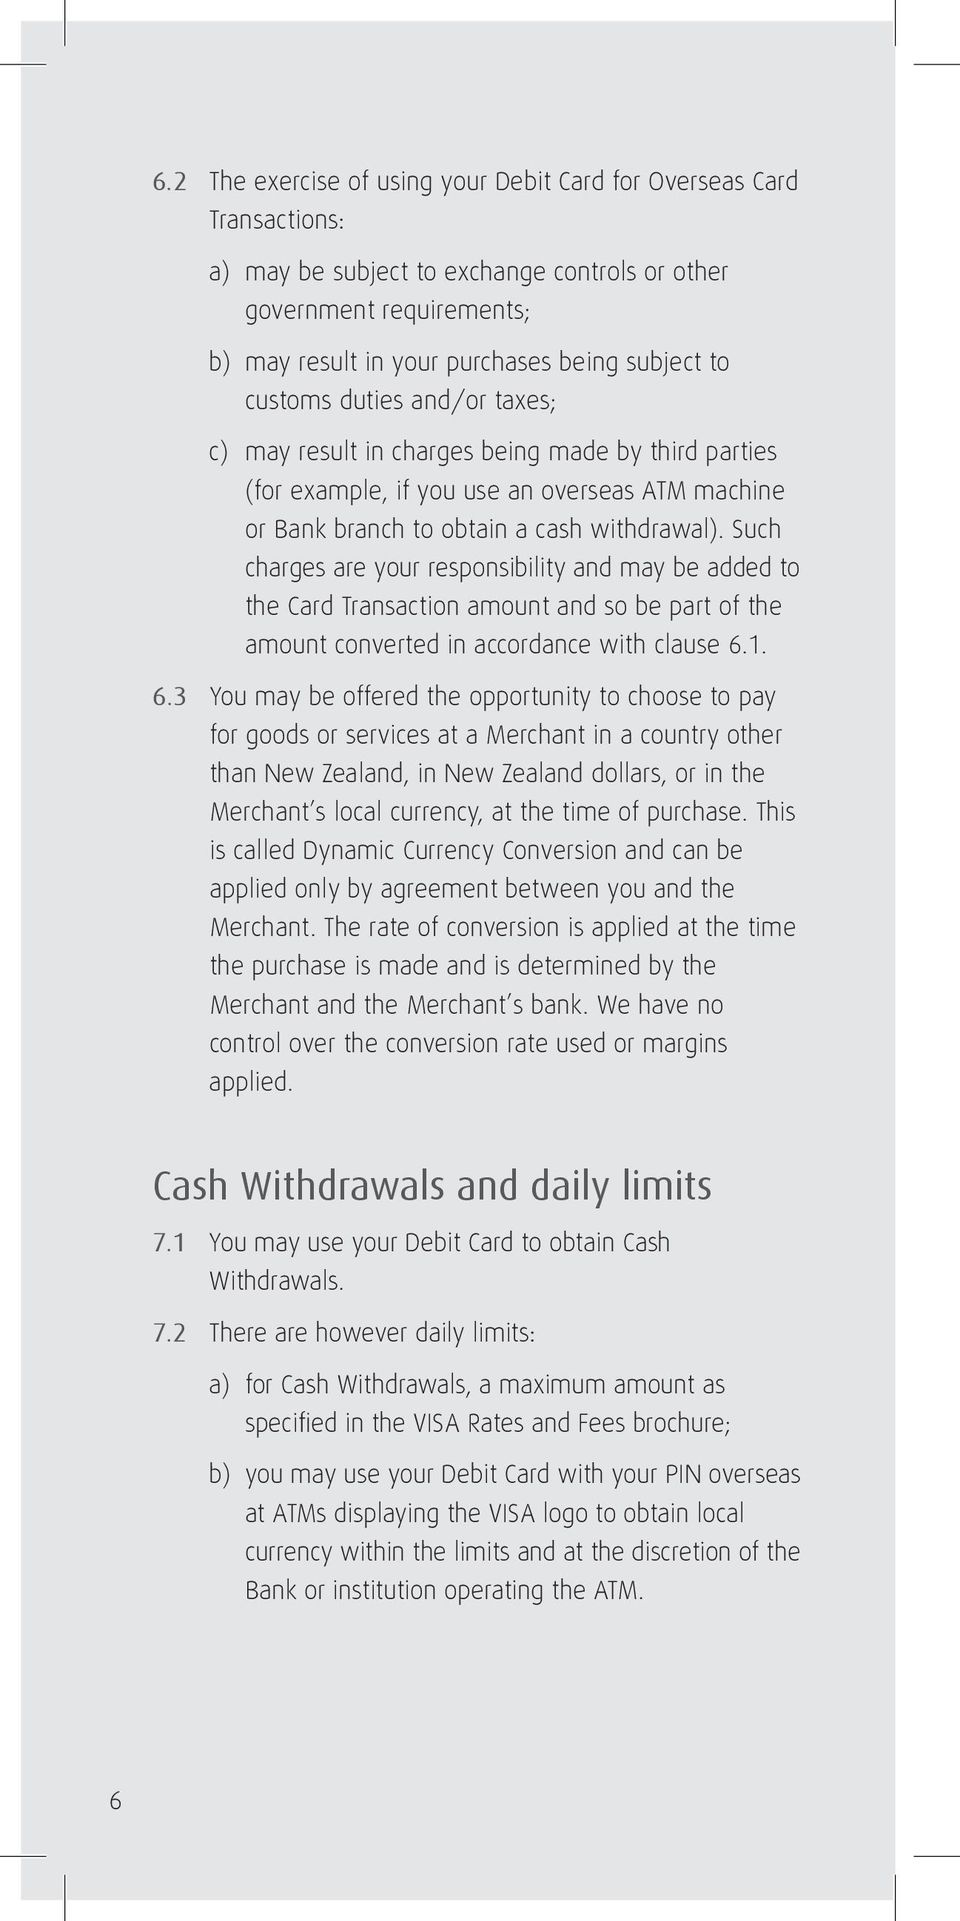 Such charges are your responsibility and may be added to the Card Transaction amount and so be part of the amount converted in accordance with clause 6.